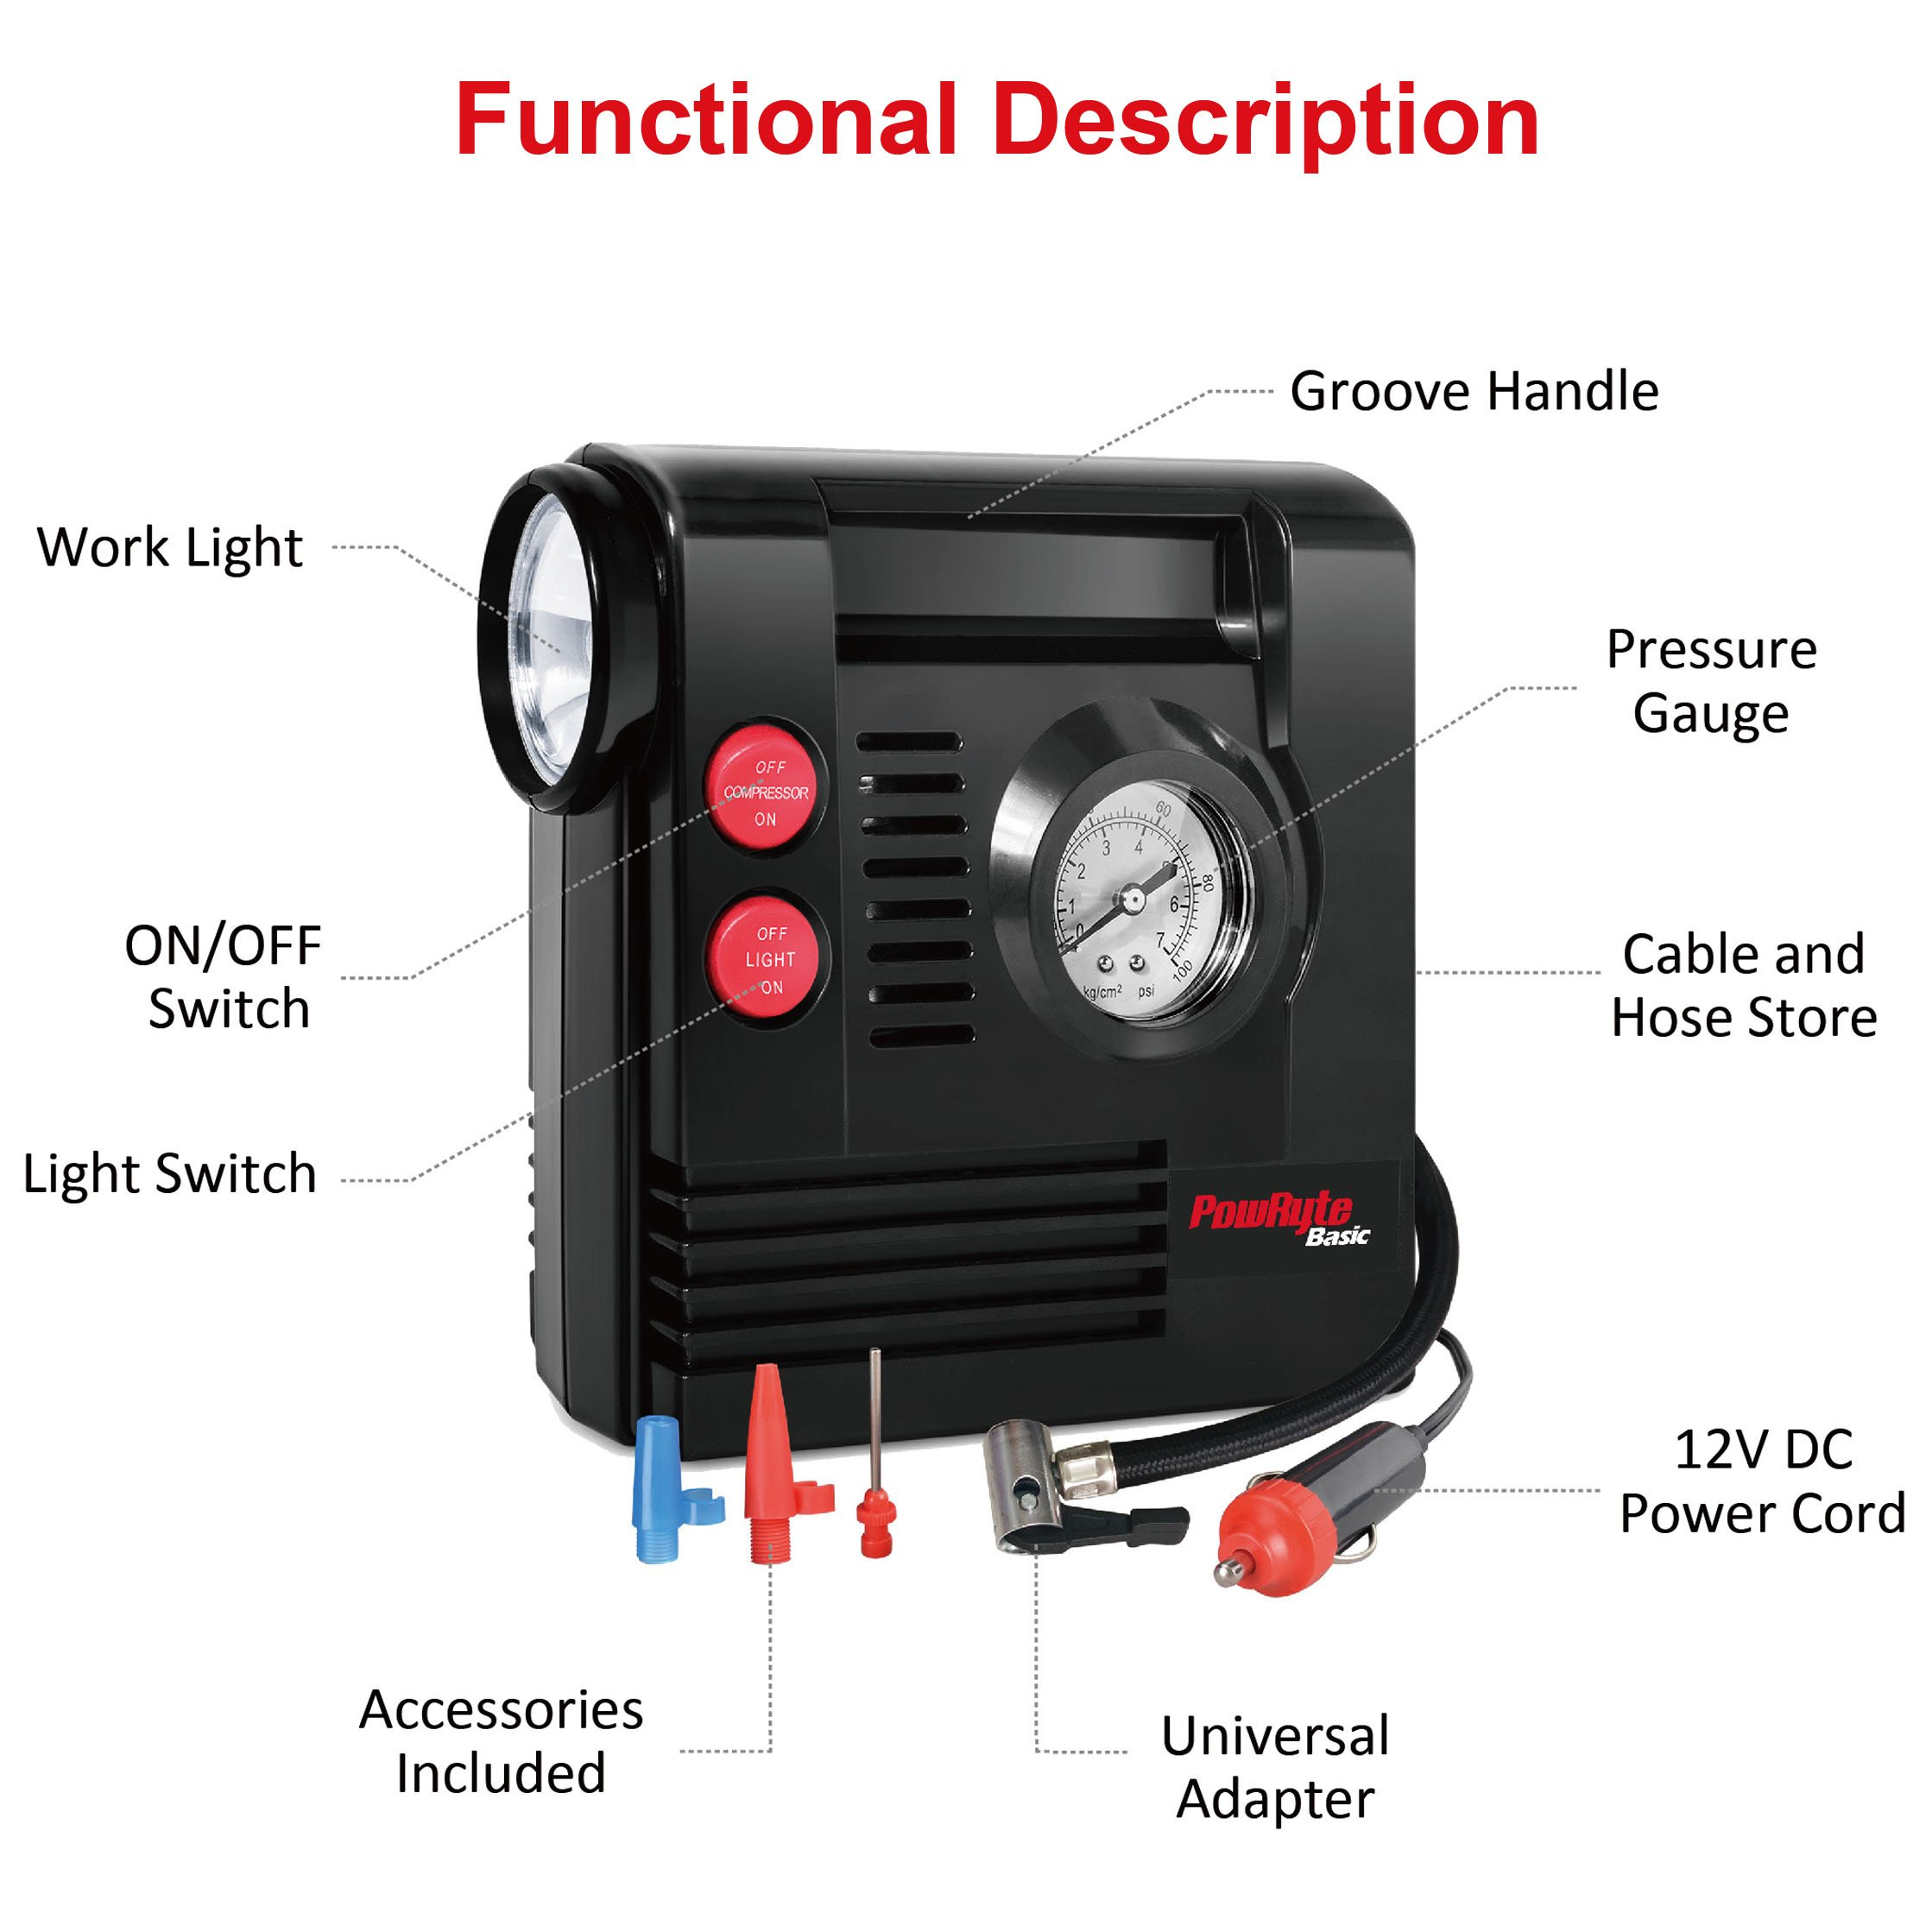 PowRyte Compact Digital Tire Inflator with Built-in Flashlight - Portable Air Compressor (Tire Inflator) by PowRyte (Image #4)